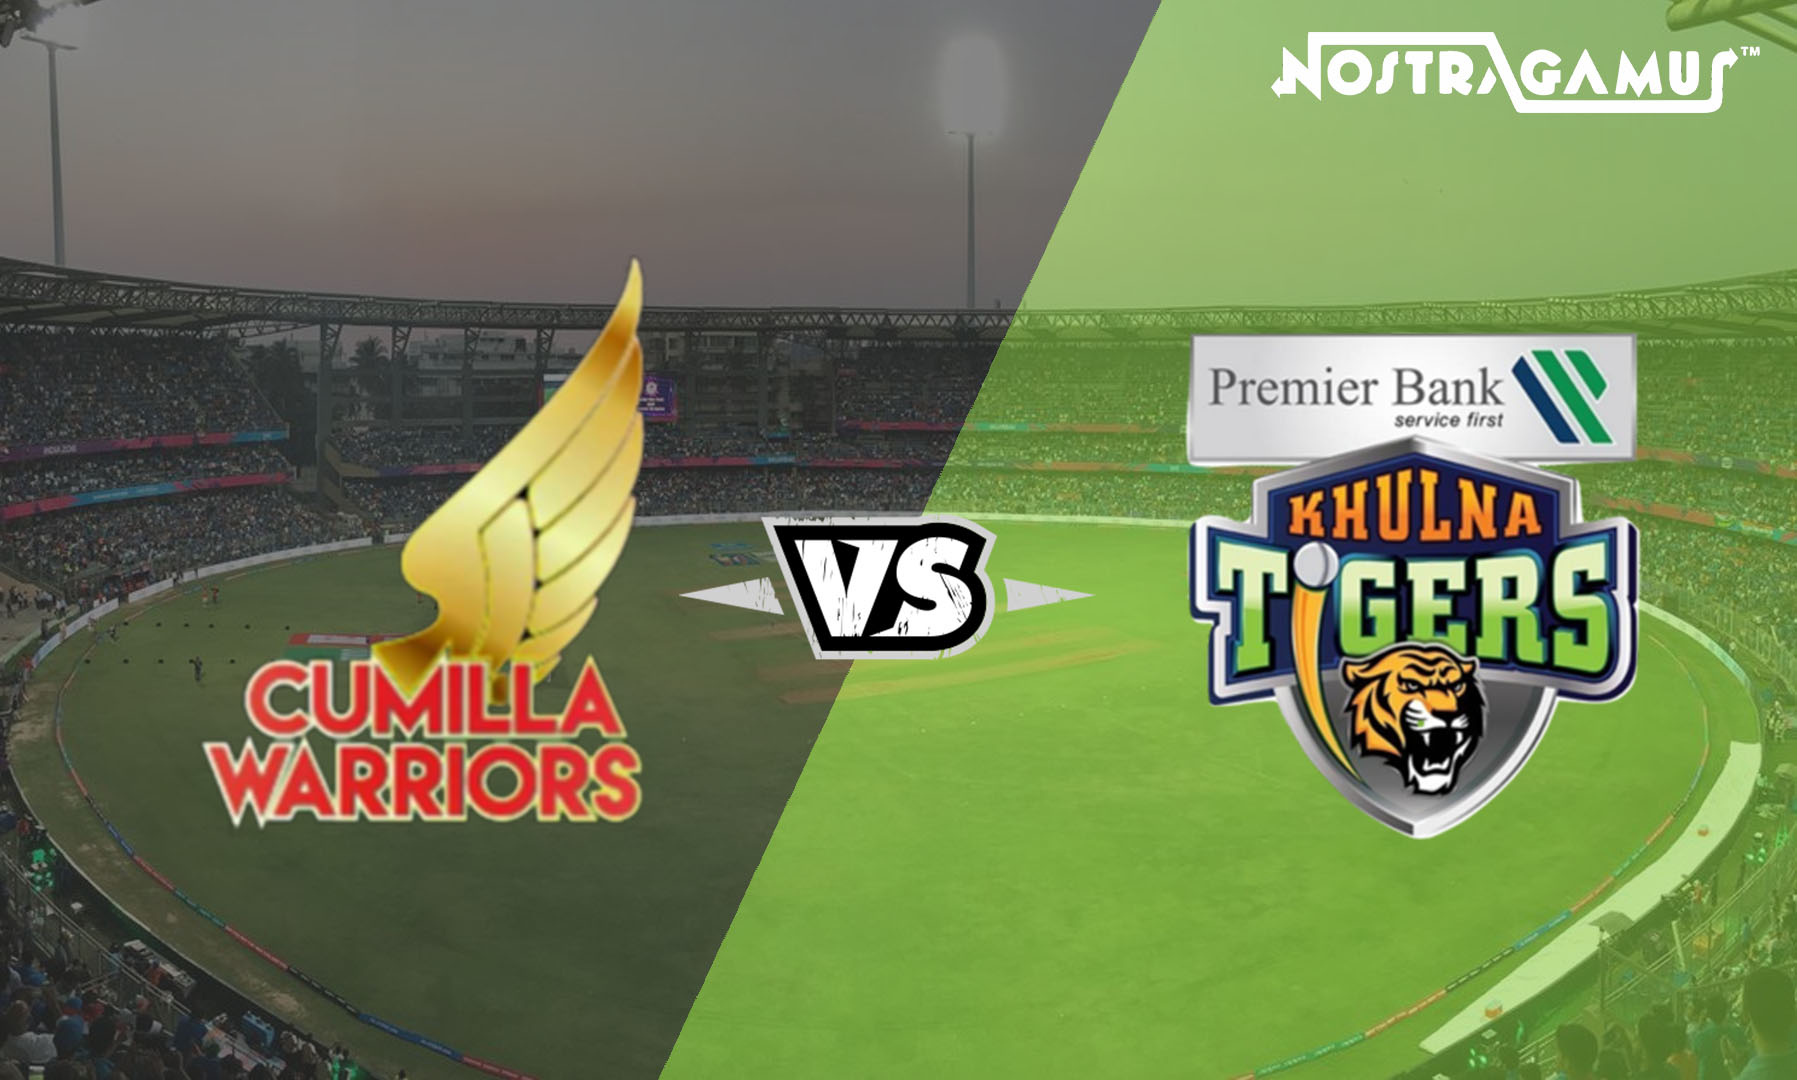 BPL 2019 Match Prediction: Cumilla Warriors vs Khulna Tigers